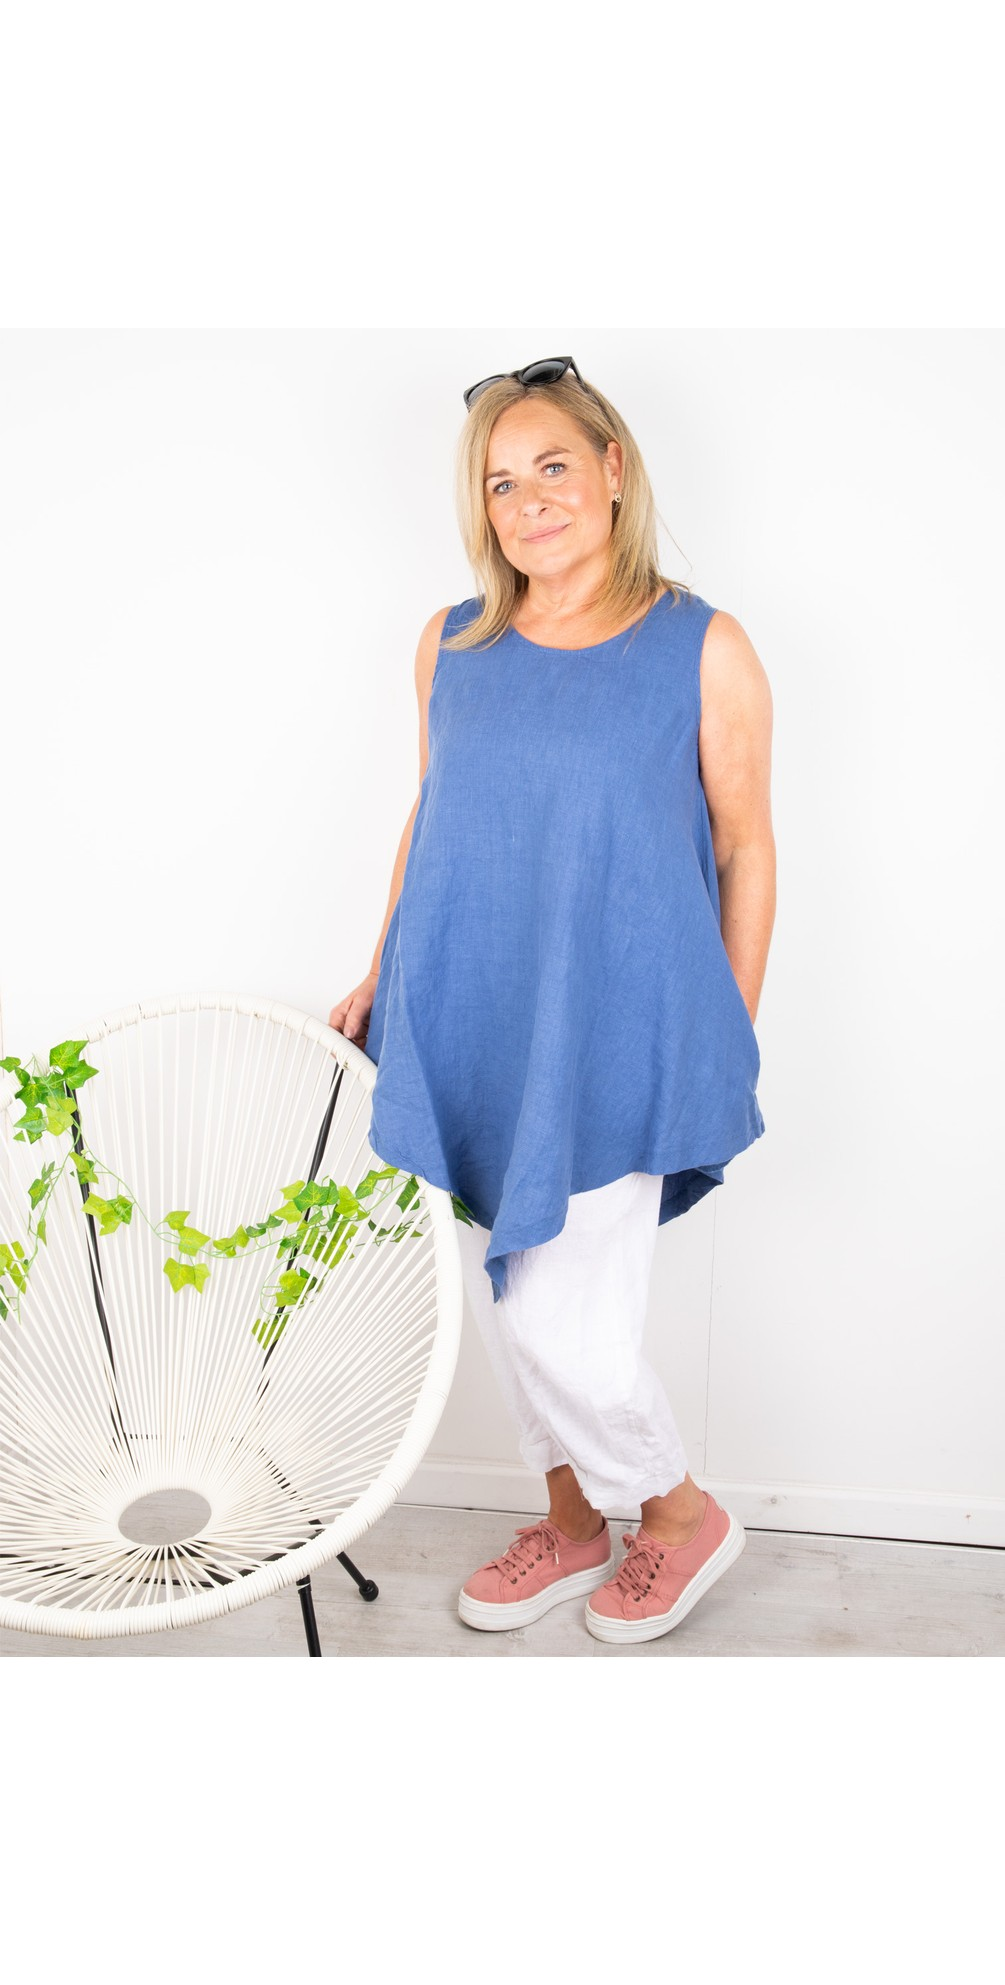 Indi Easyfit Linen Sleeveless Top main image